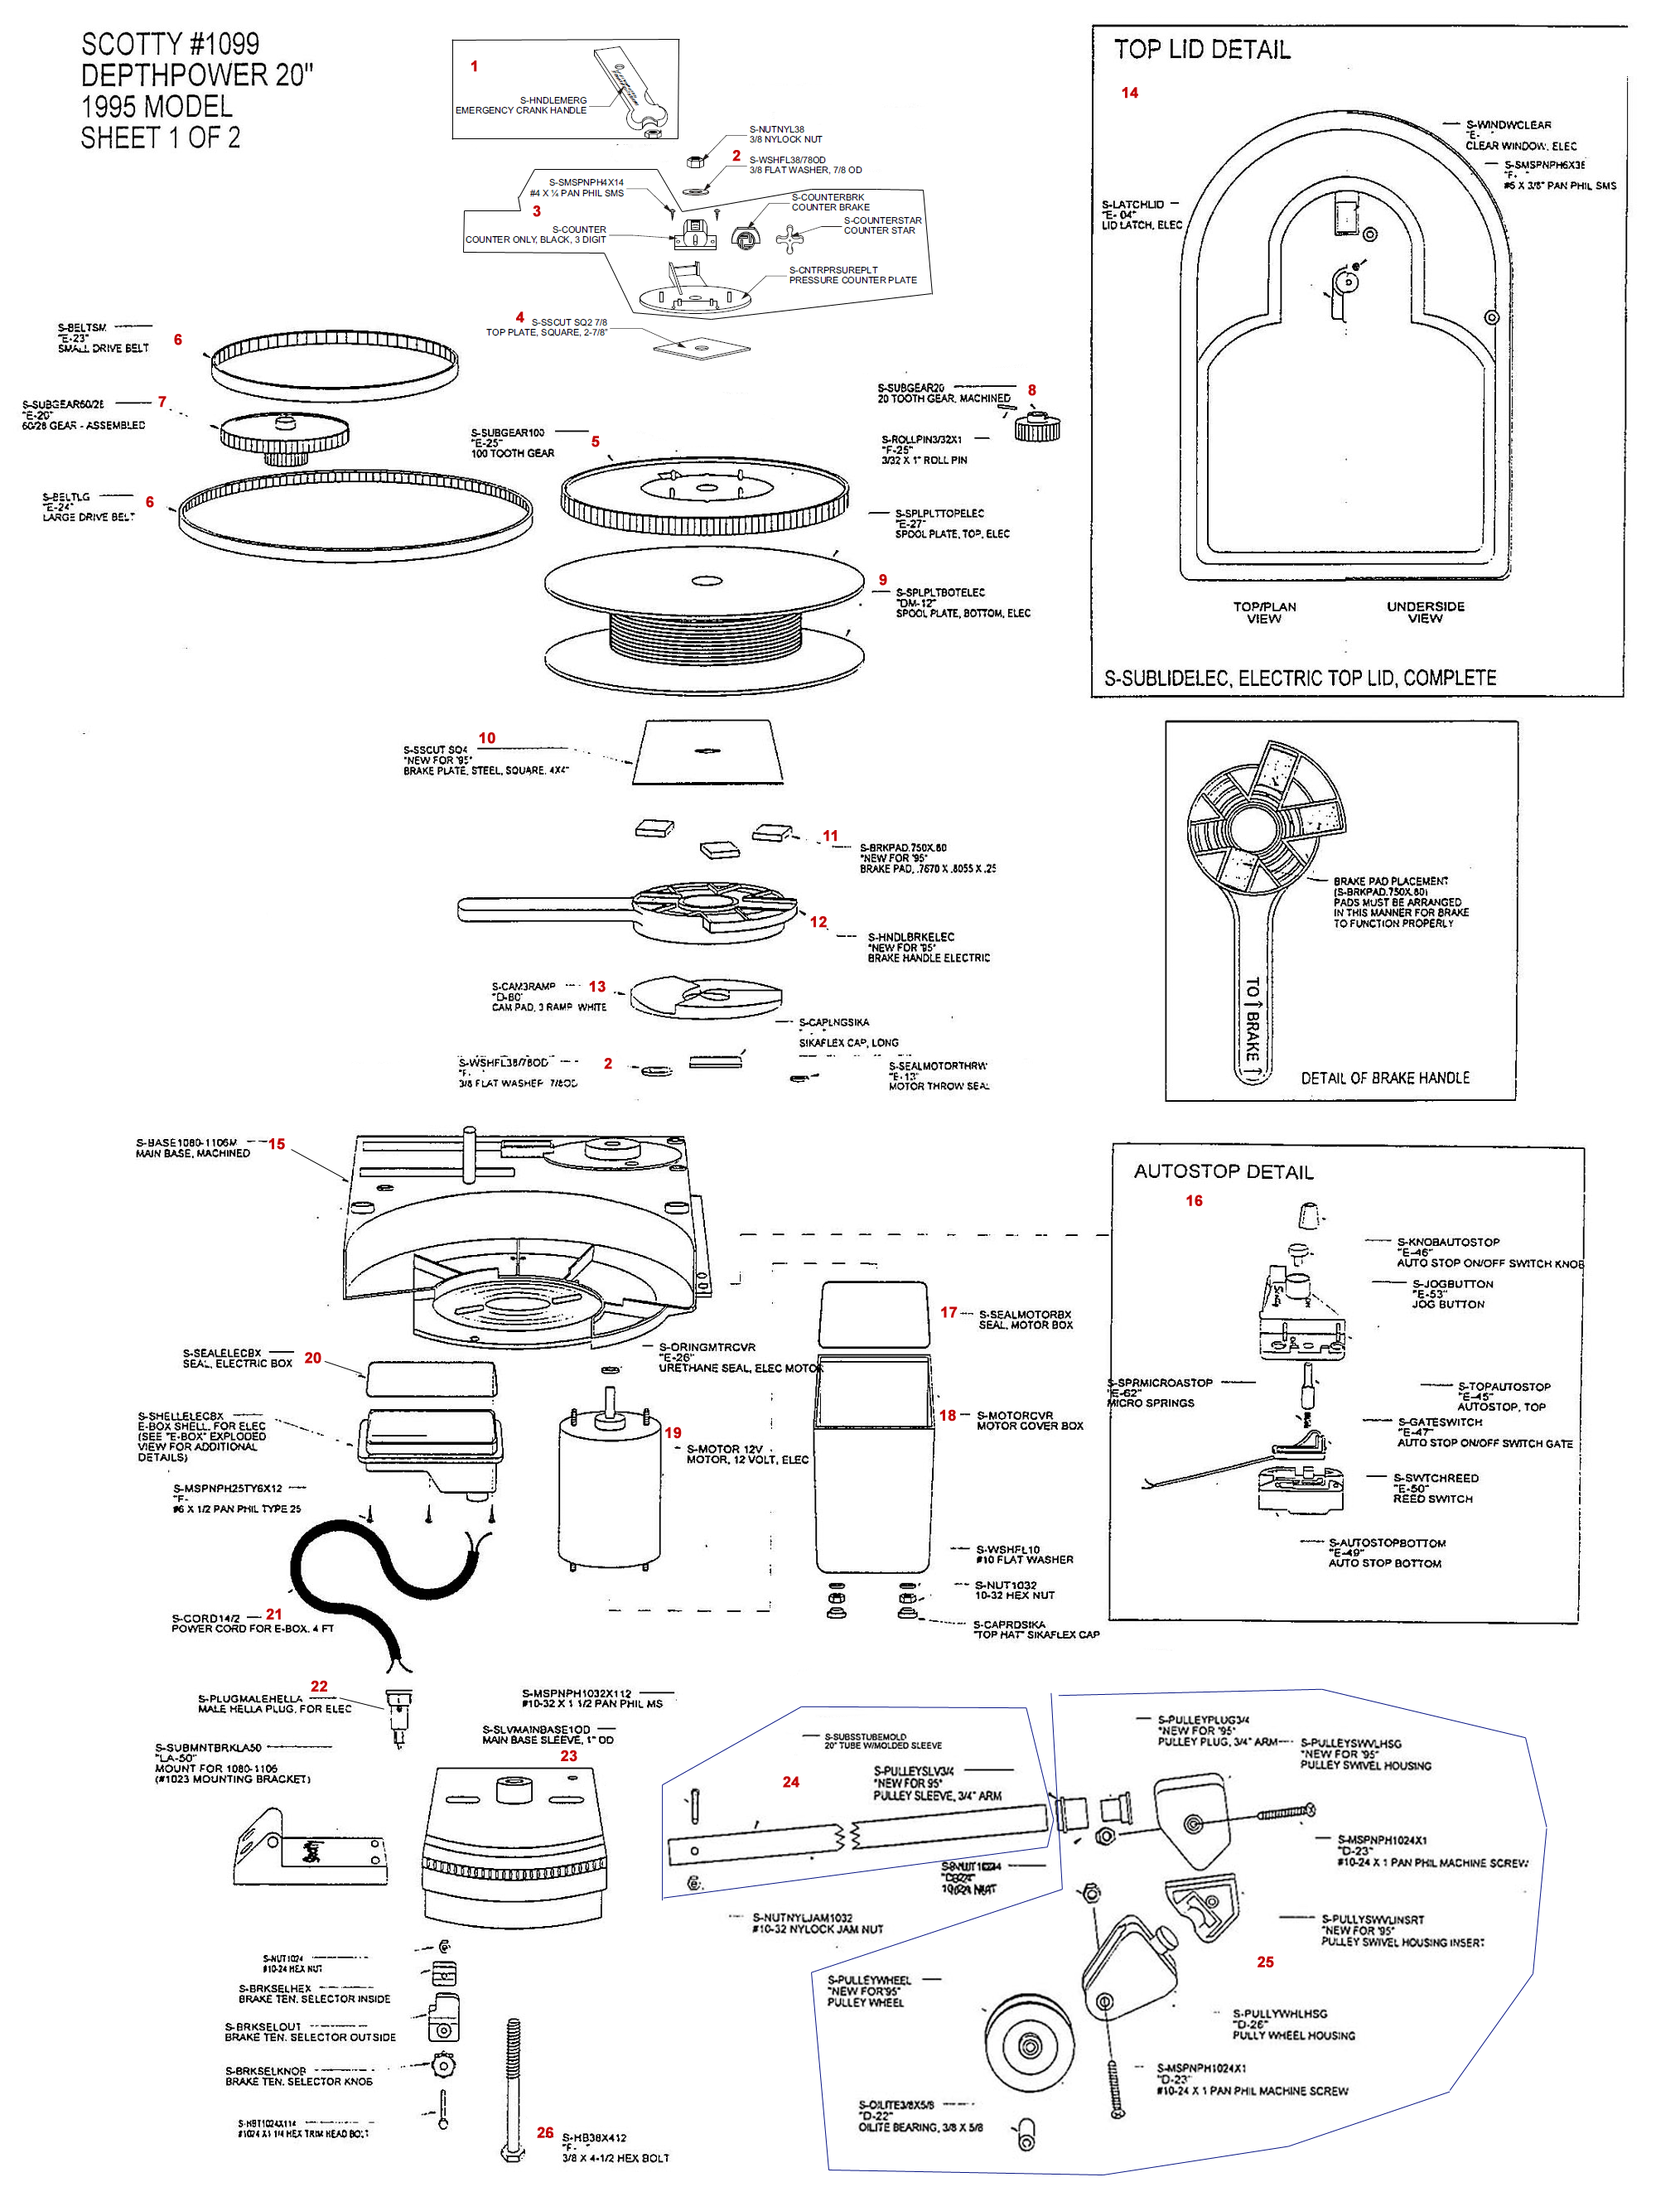 scotty electric downrigger wiring instructions